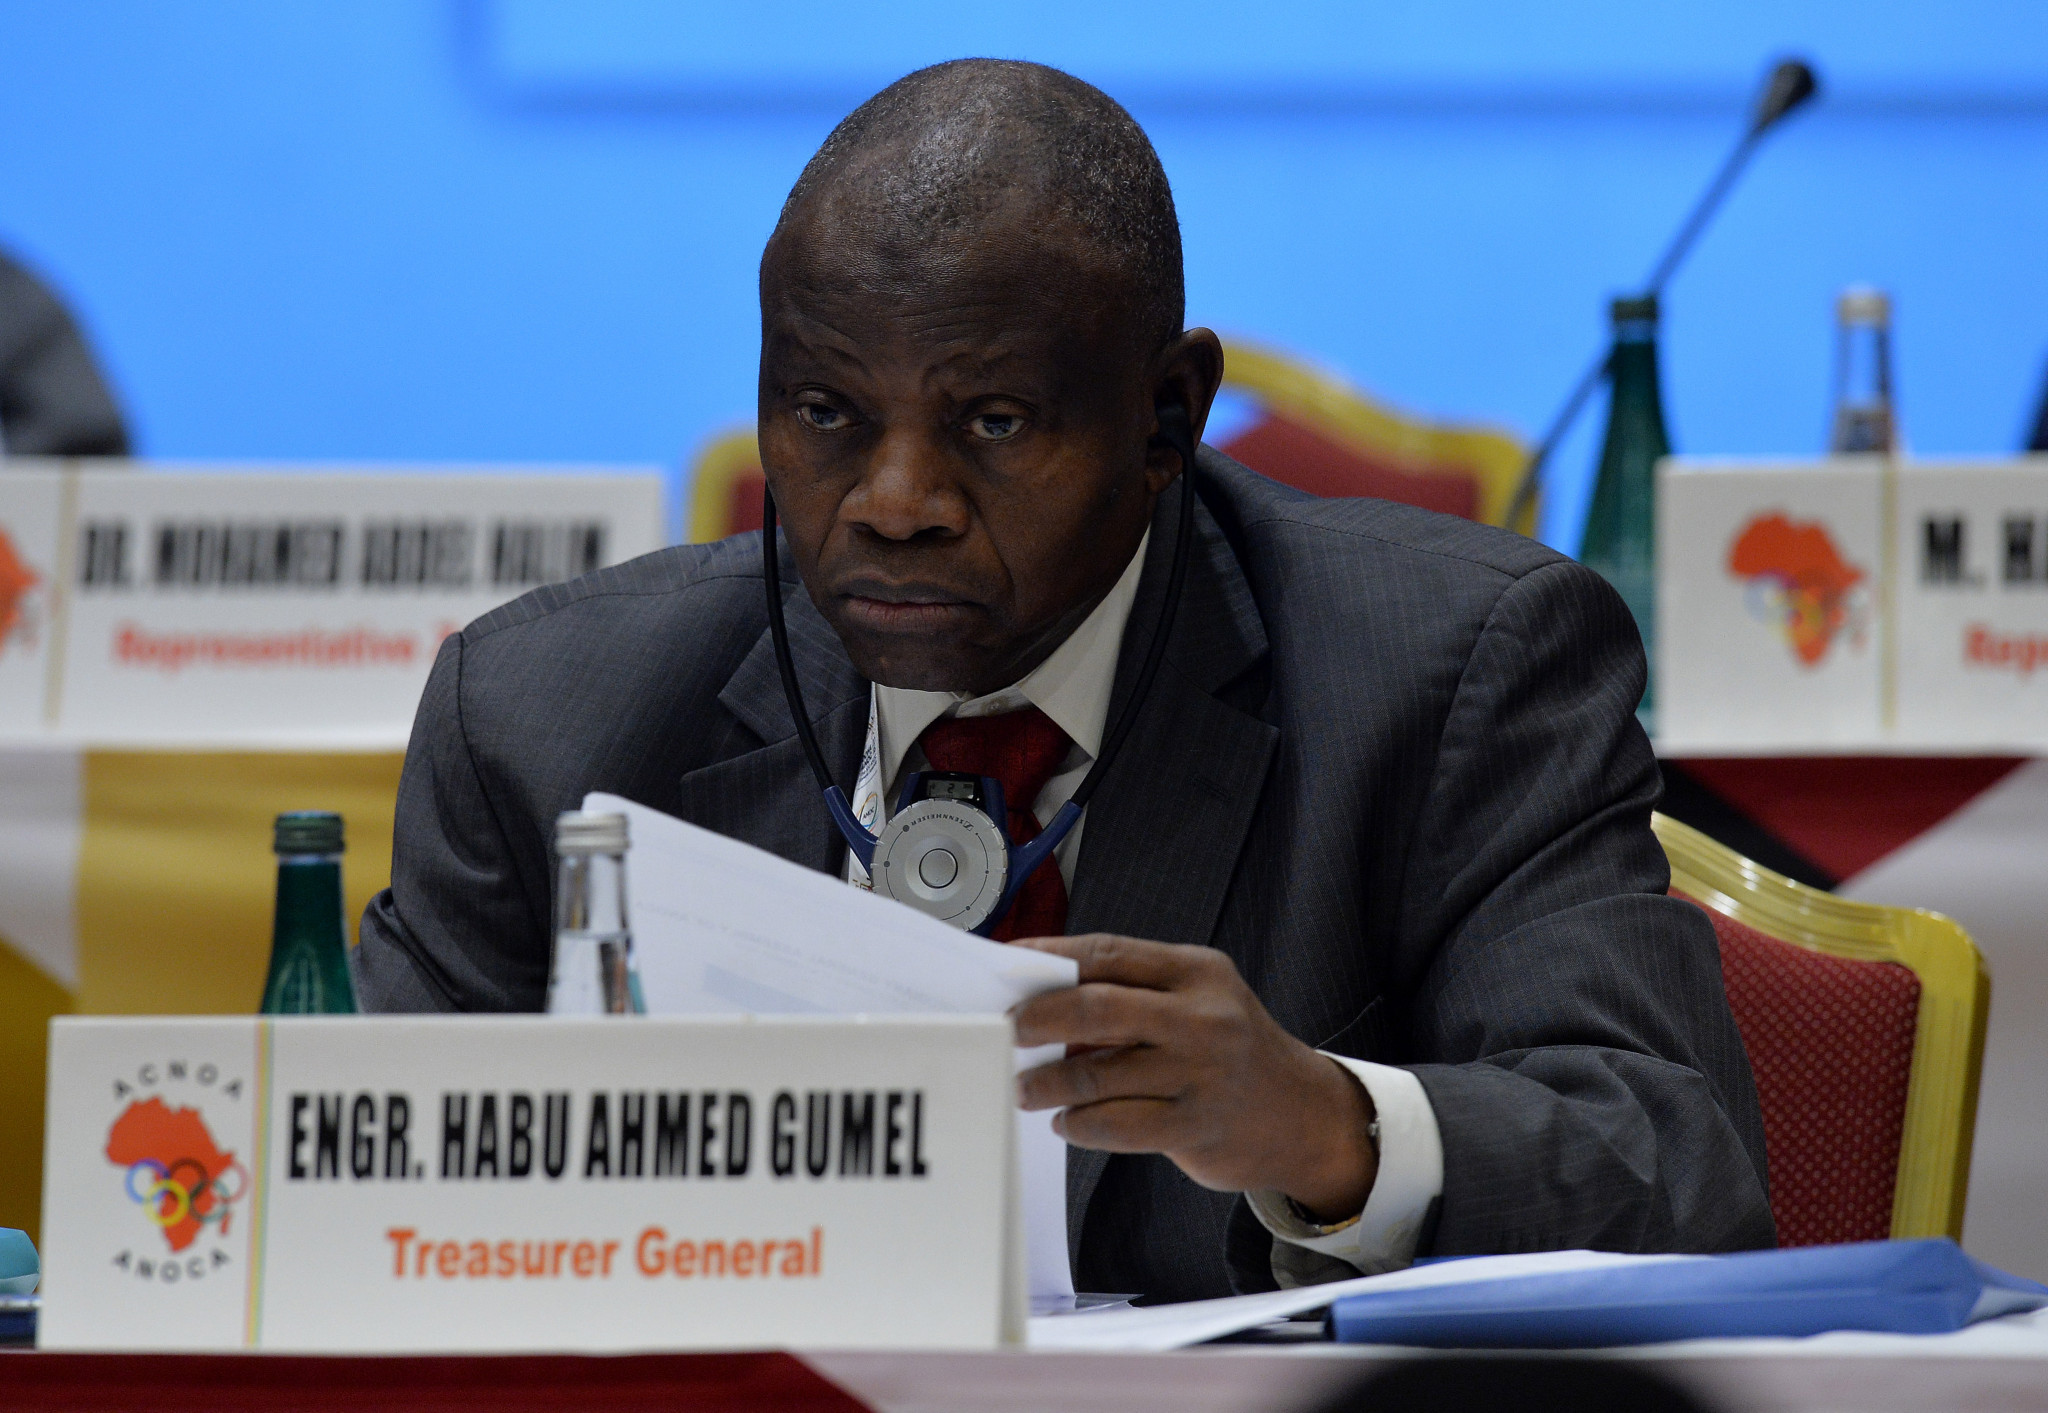 ANOC treasurer Habu Gumel is also named in the letter ©Getty Images